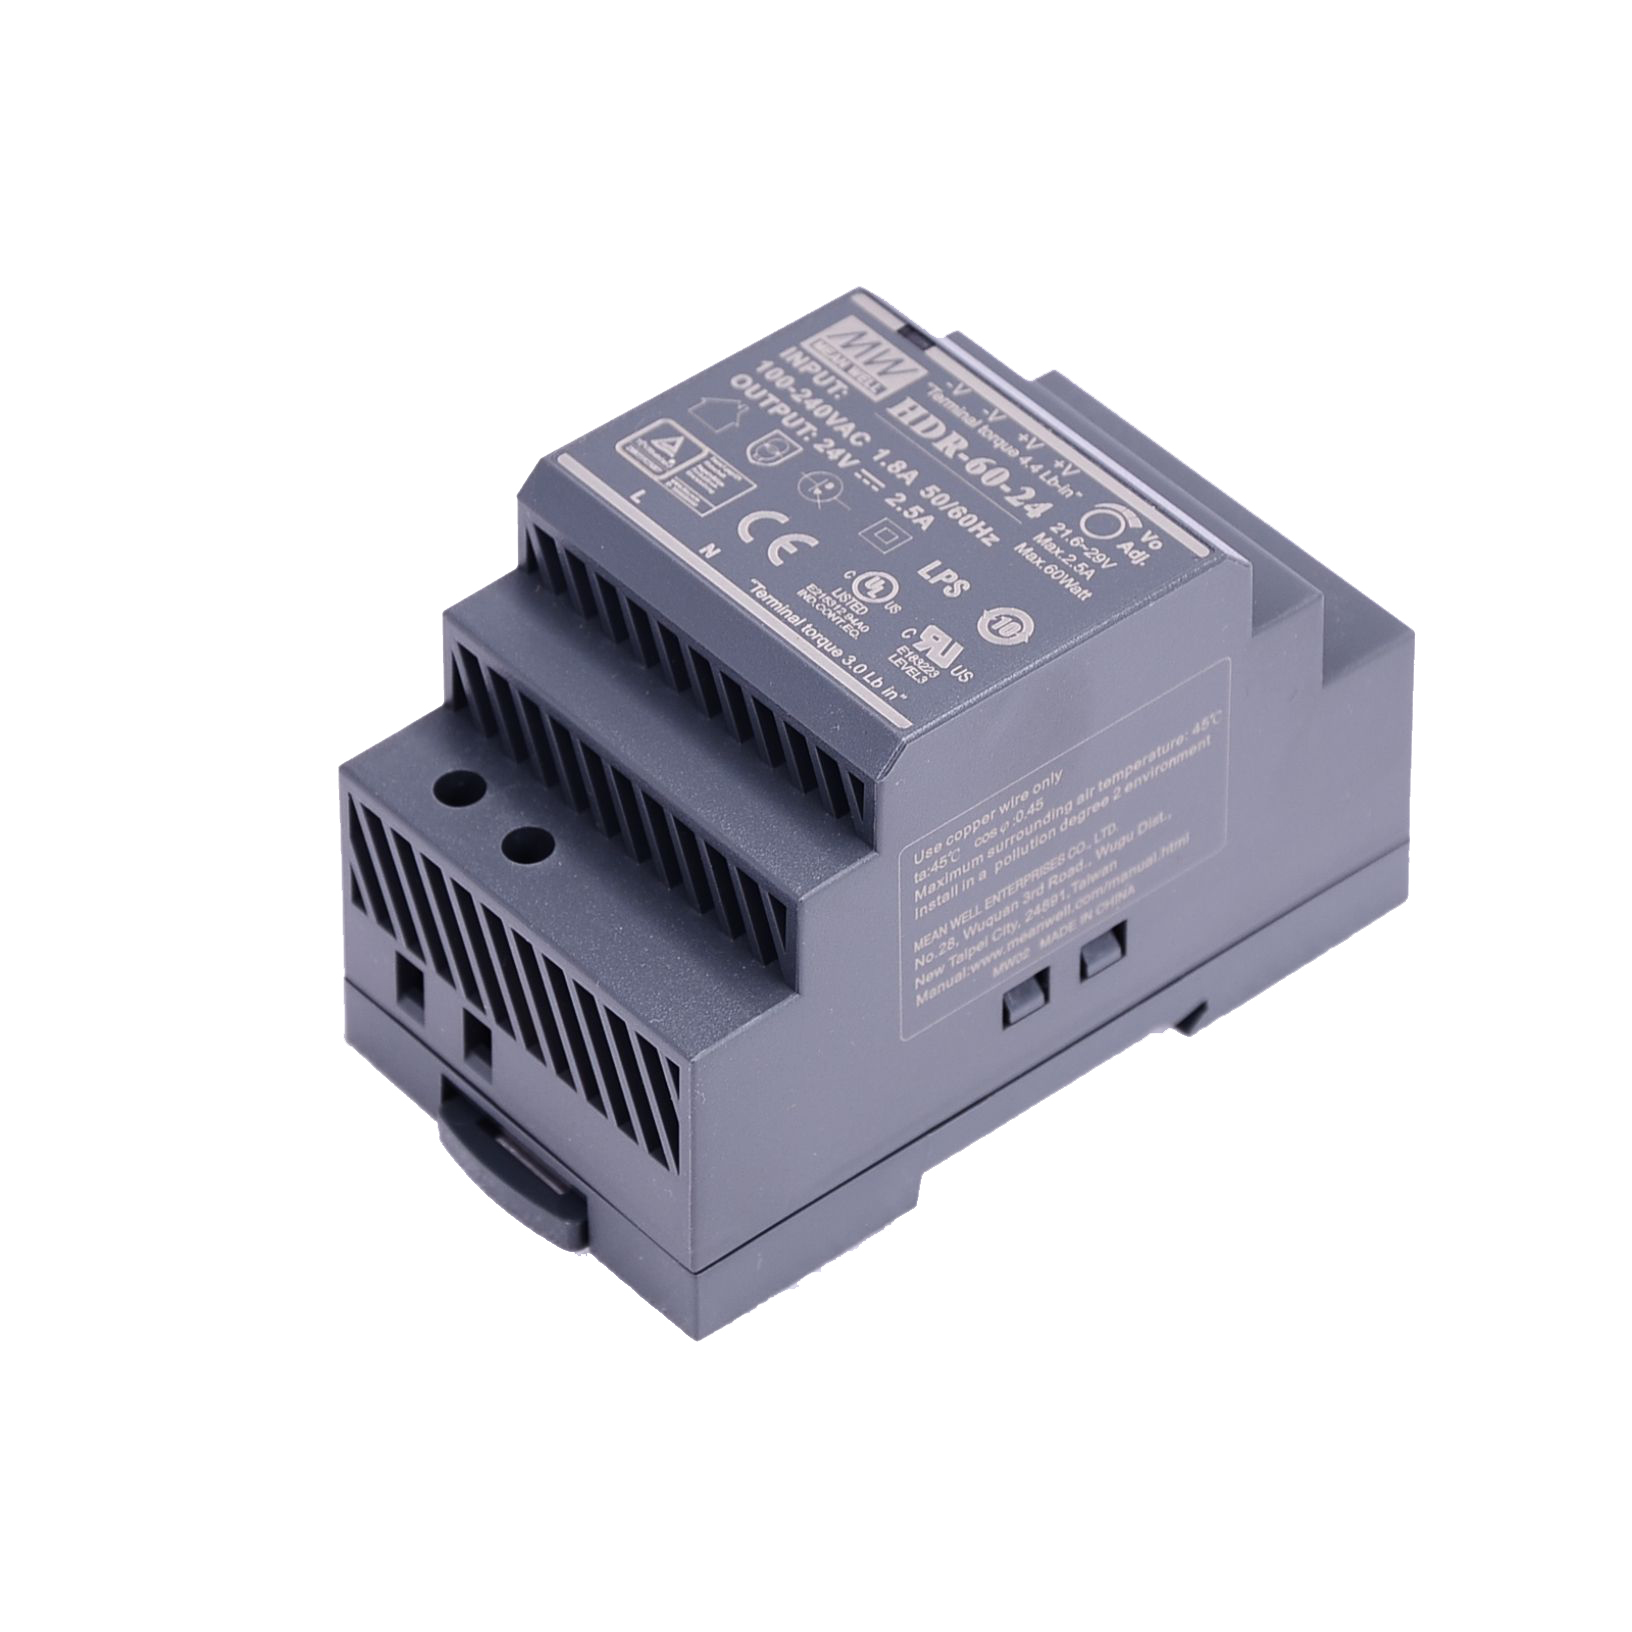 Original Mean Well HDR-15 30 60 100 150 series DC 5V 12V 15V 24V 48V meanwell Ultra Slim Step Shape DIN Rail Power Supply-3